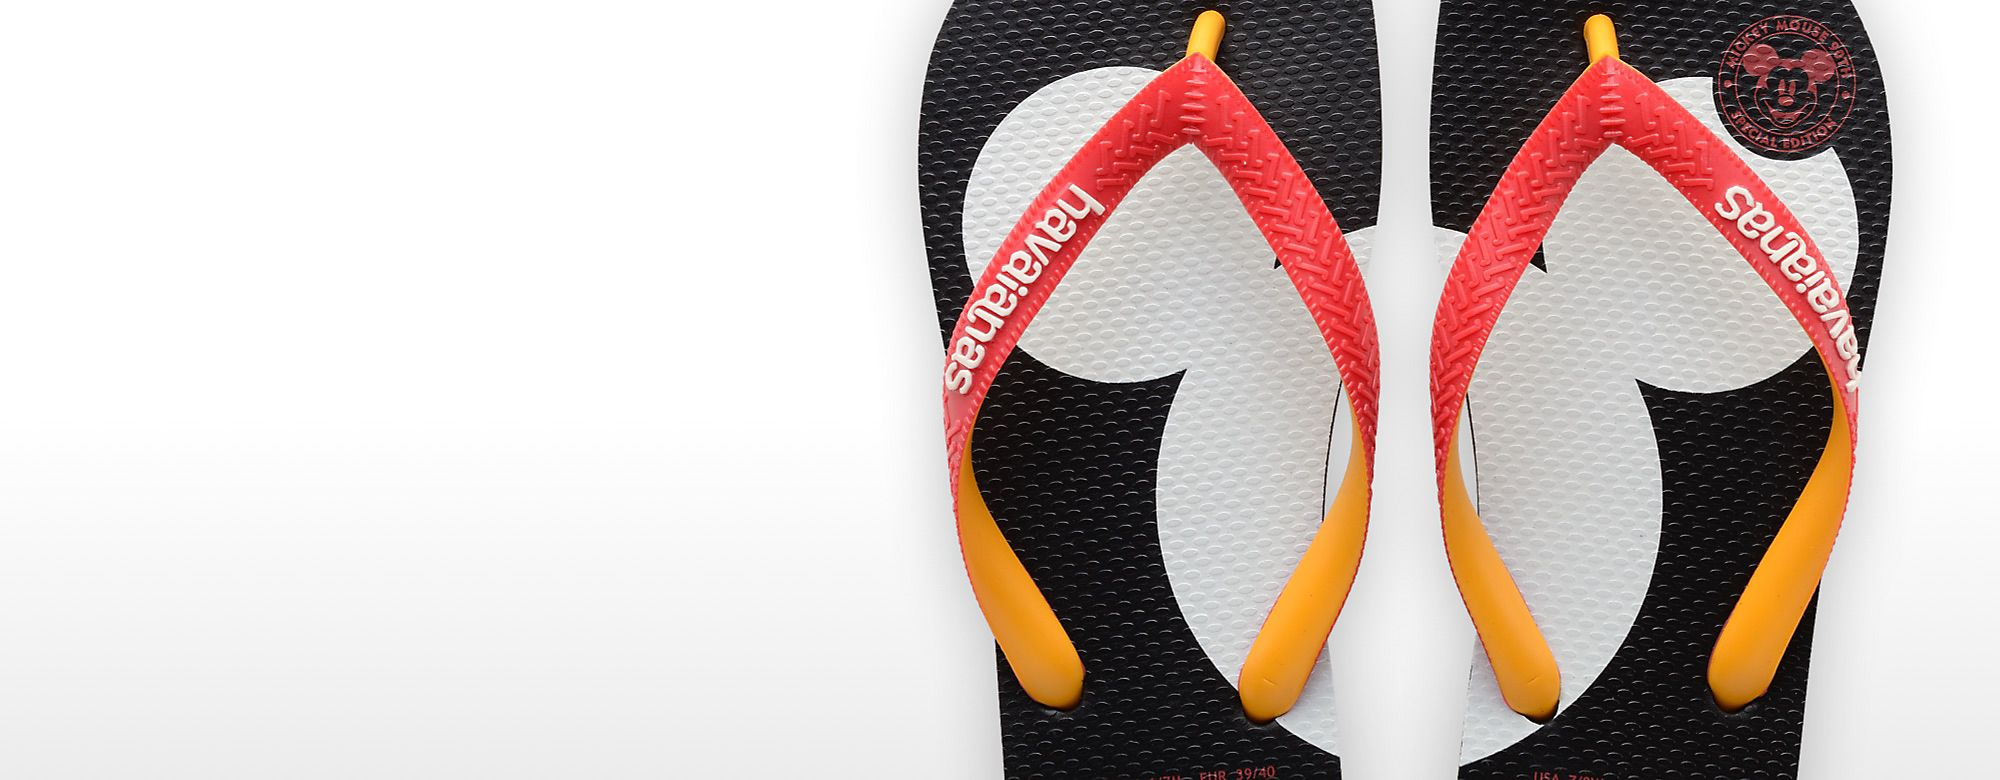 Havaianas Havaianas have teamed up with Disney to bring summer vibes SHOP ALL